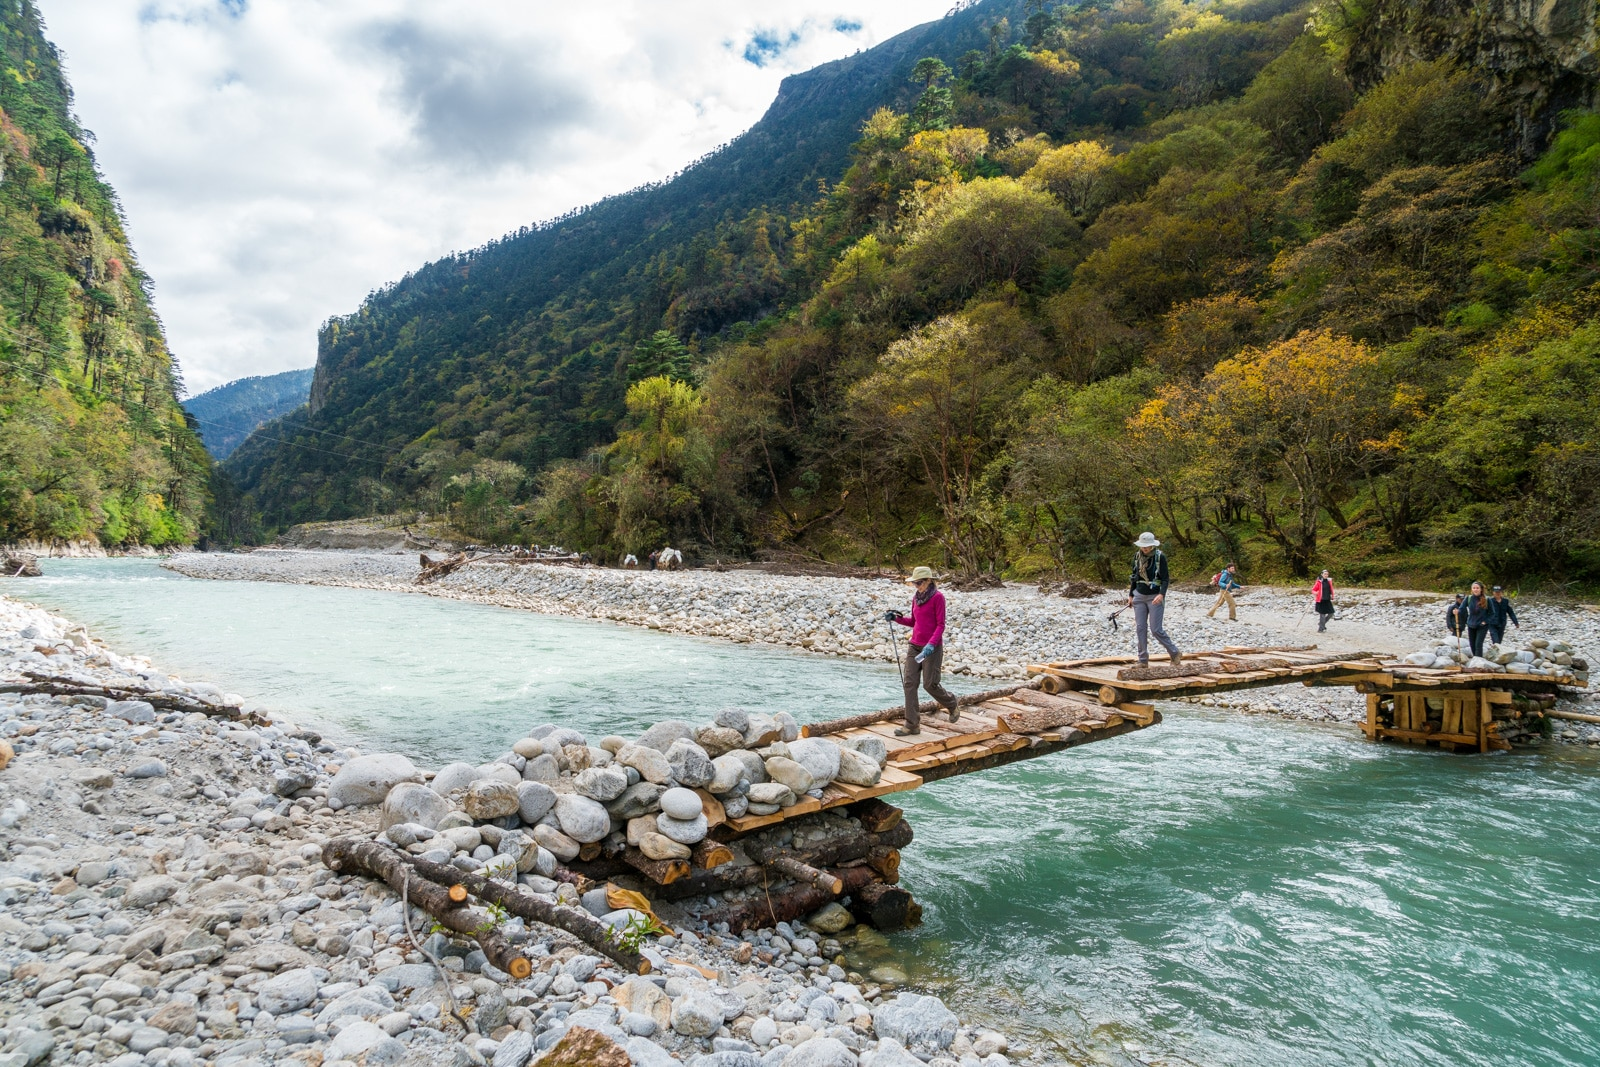 Tourists walking across a bridge over a small river